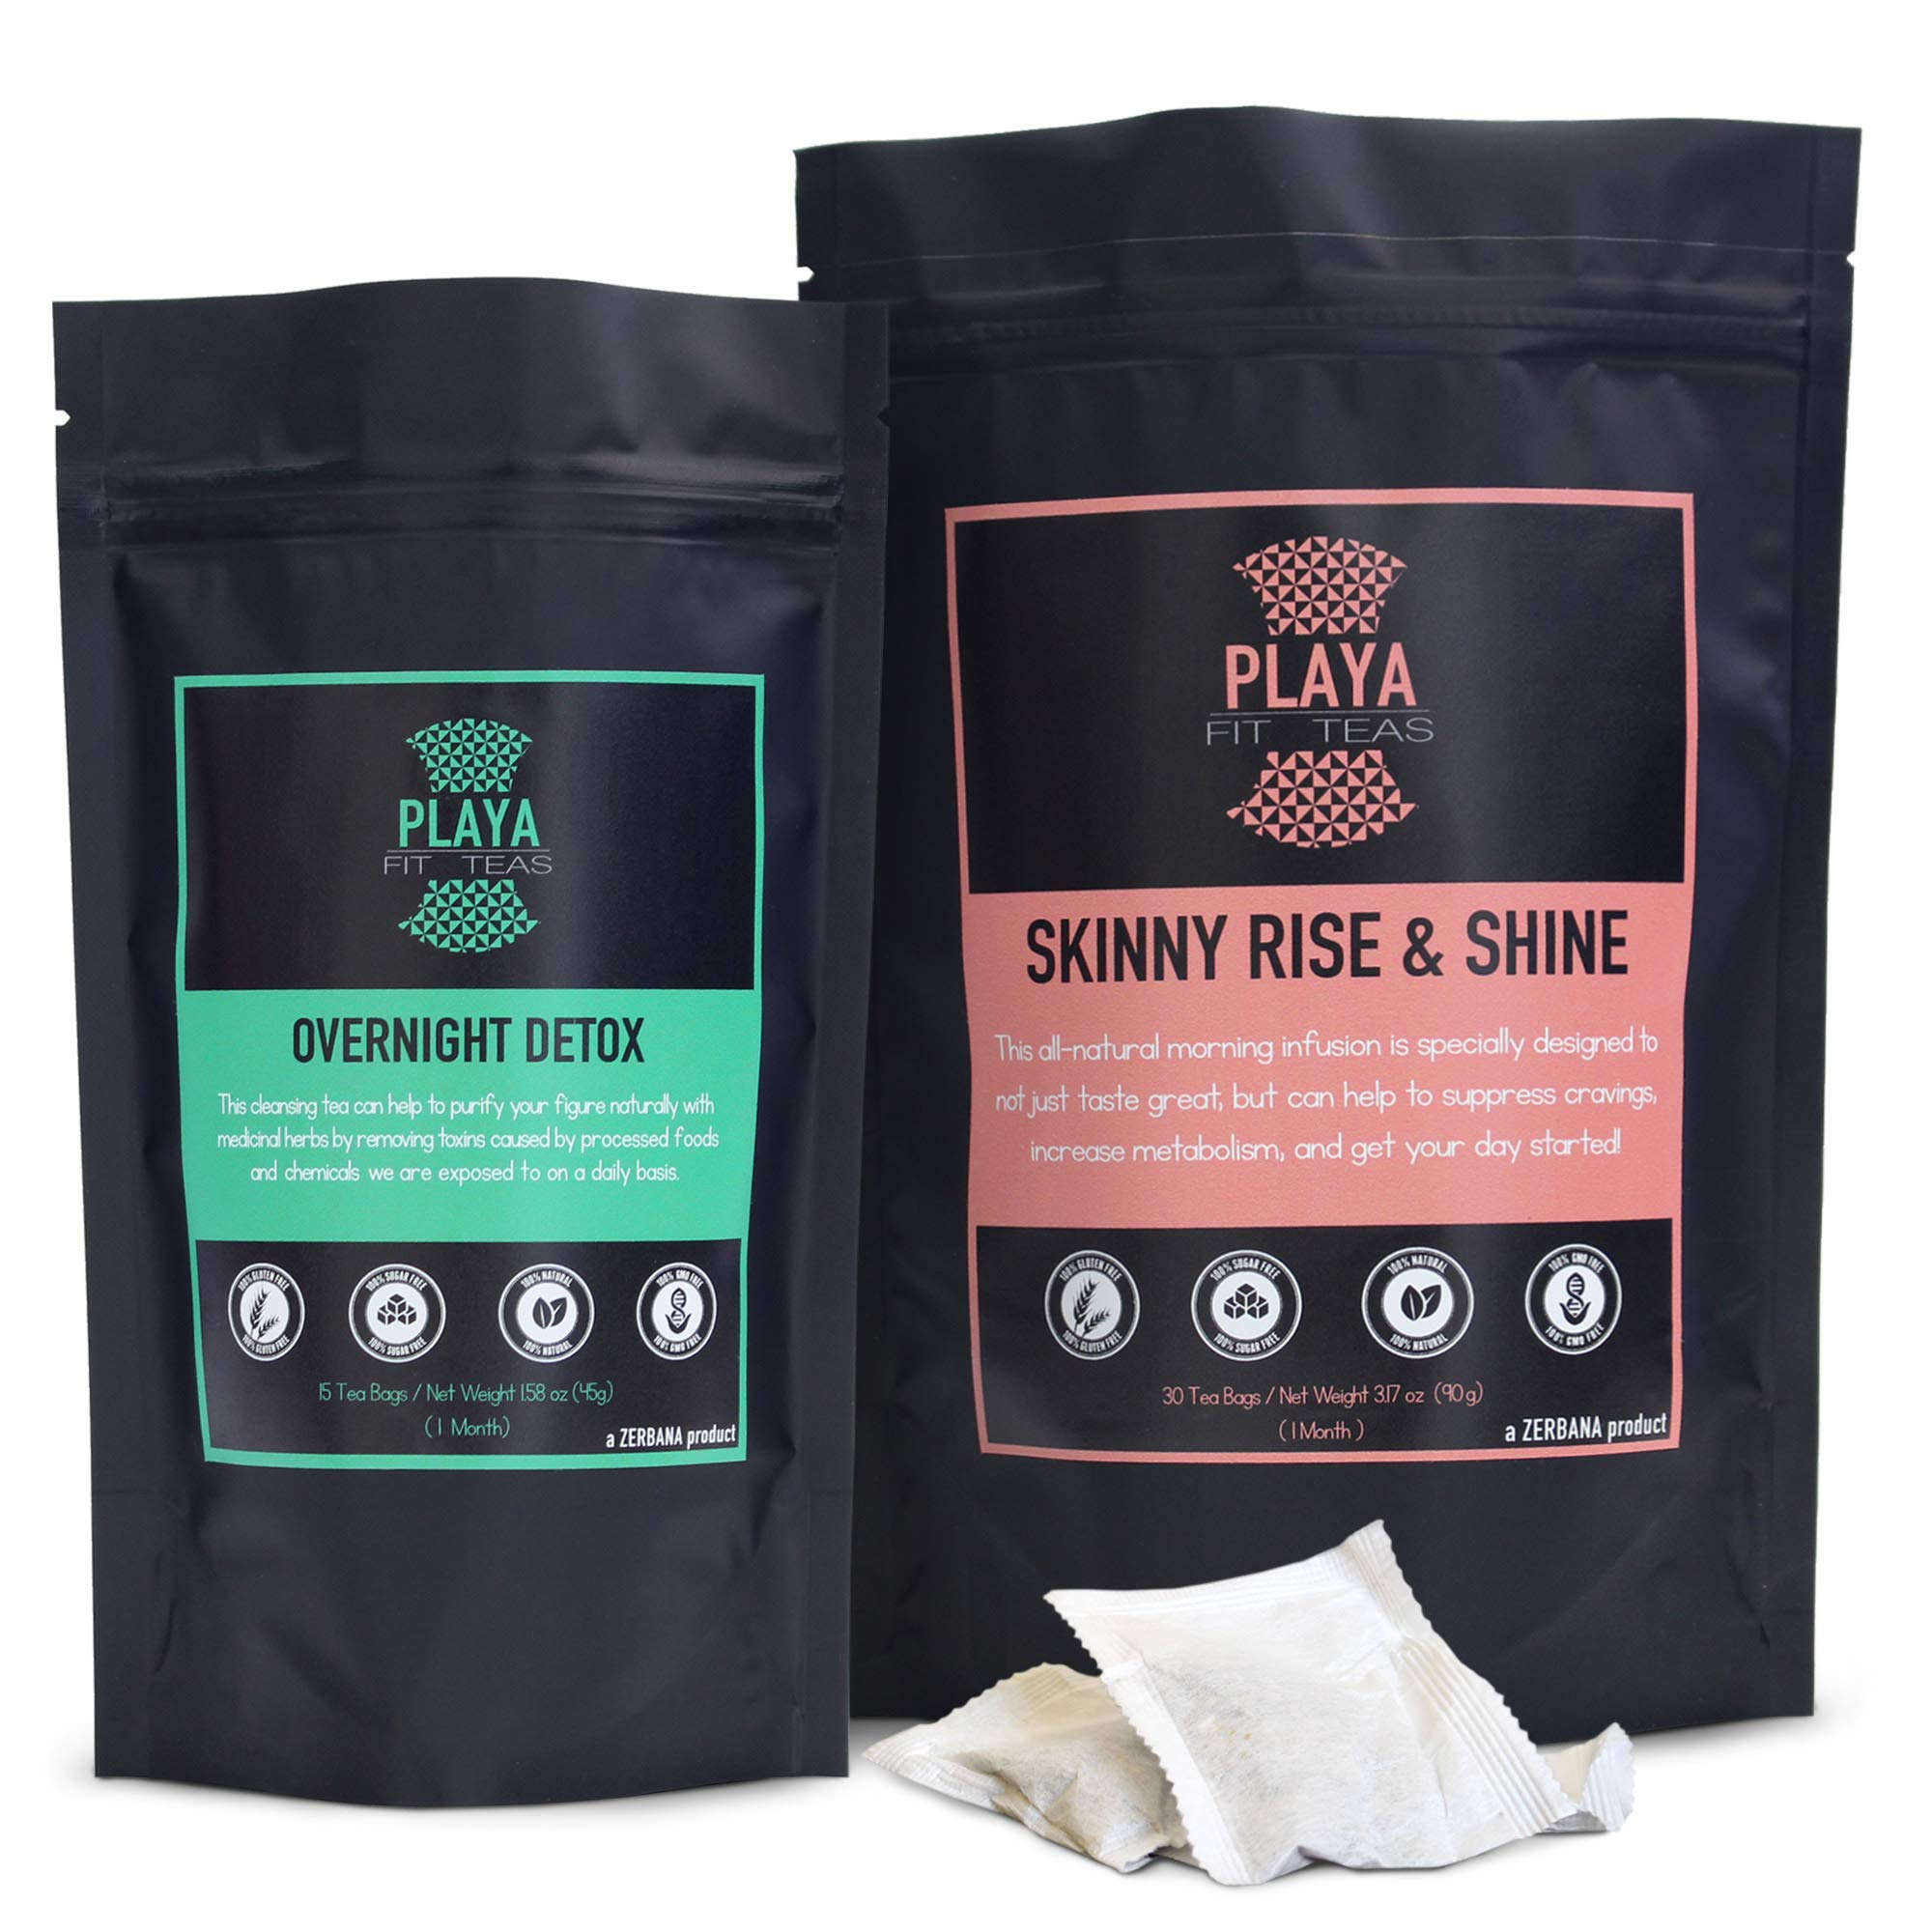 Playa Fit Teas Skinny Detox & Weight Loss - 2 Pack Day & Night - 1 Month Supply - Premium Antioxidant Rich Herbal Cleanse For Belly Fat Made In Chile - 45 Tea Bags